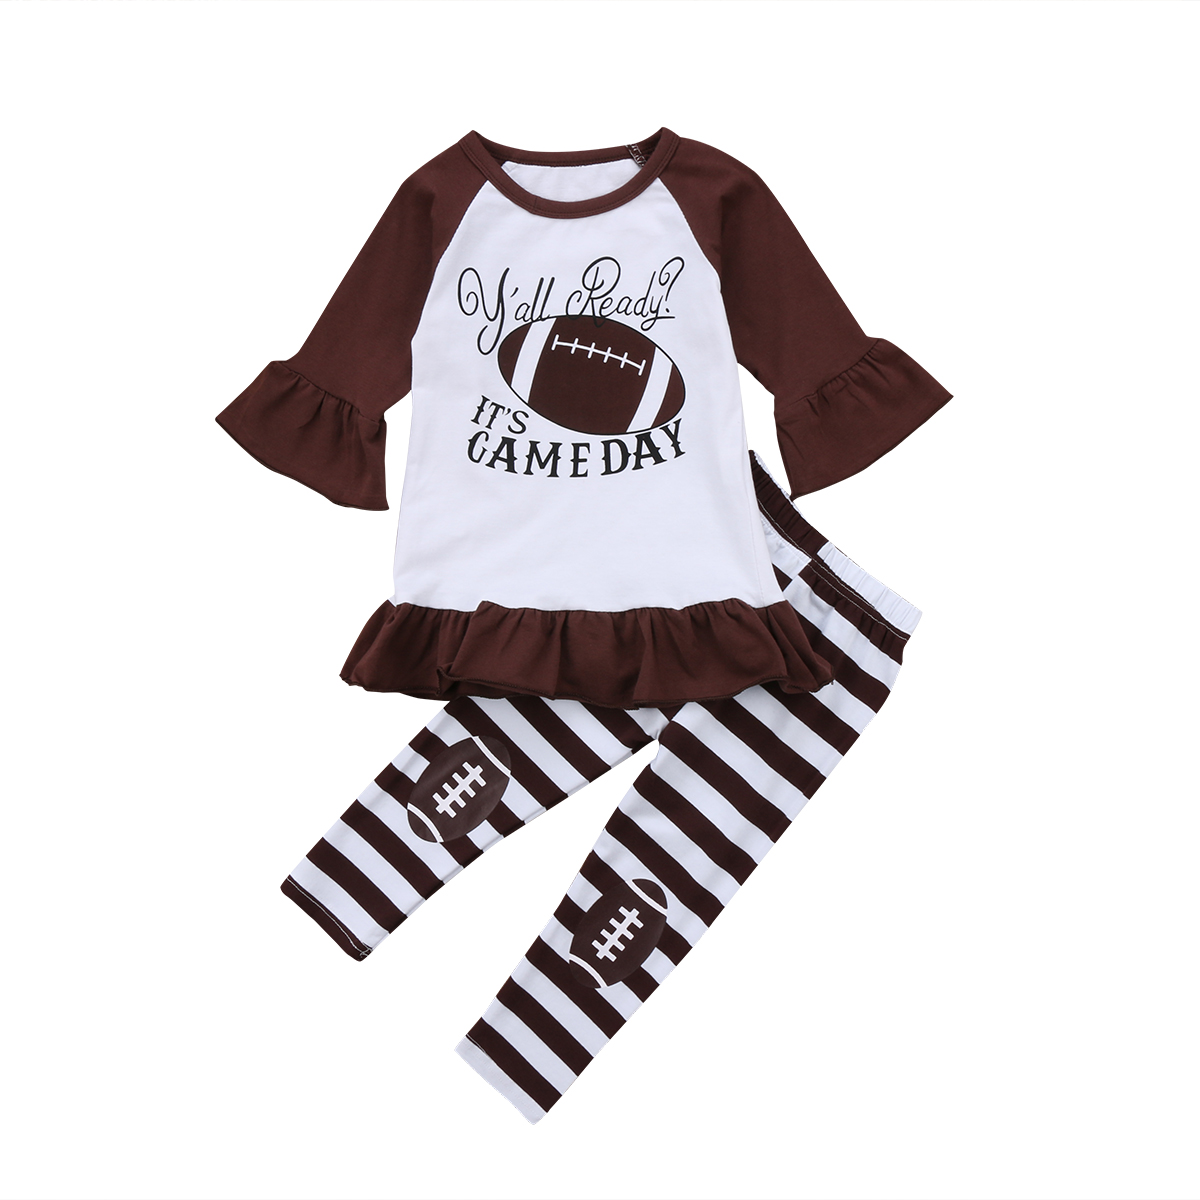 Fashion Kids Toddler Baby Girl Football Patterned Outfit цены онлайн